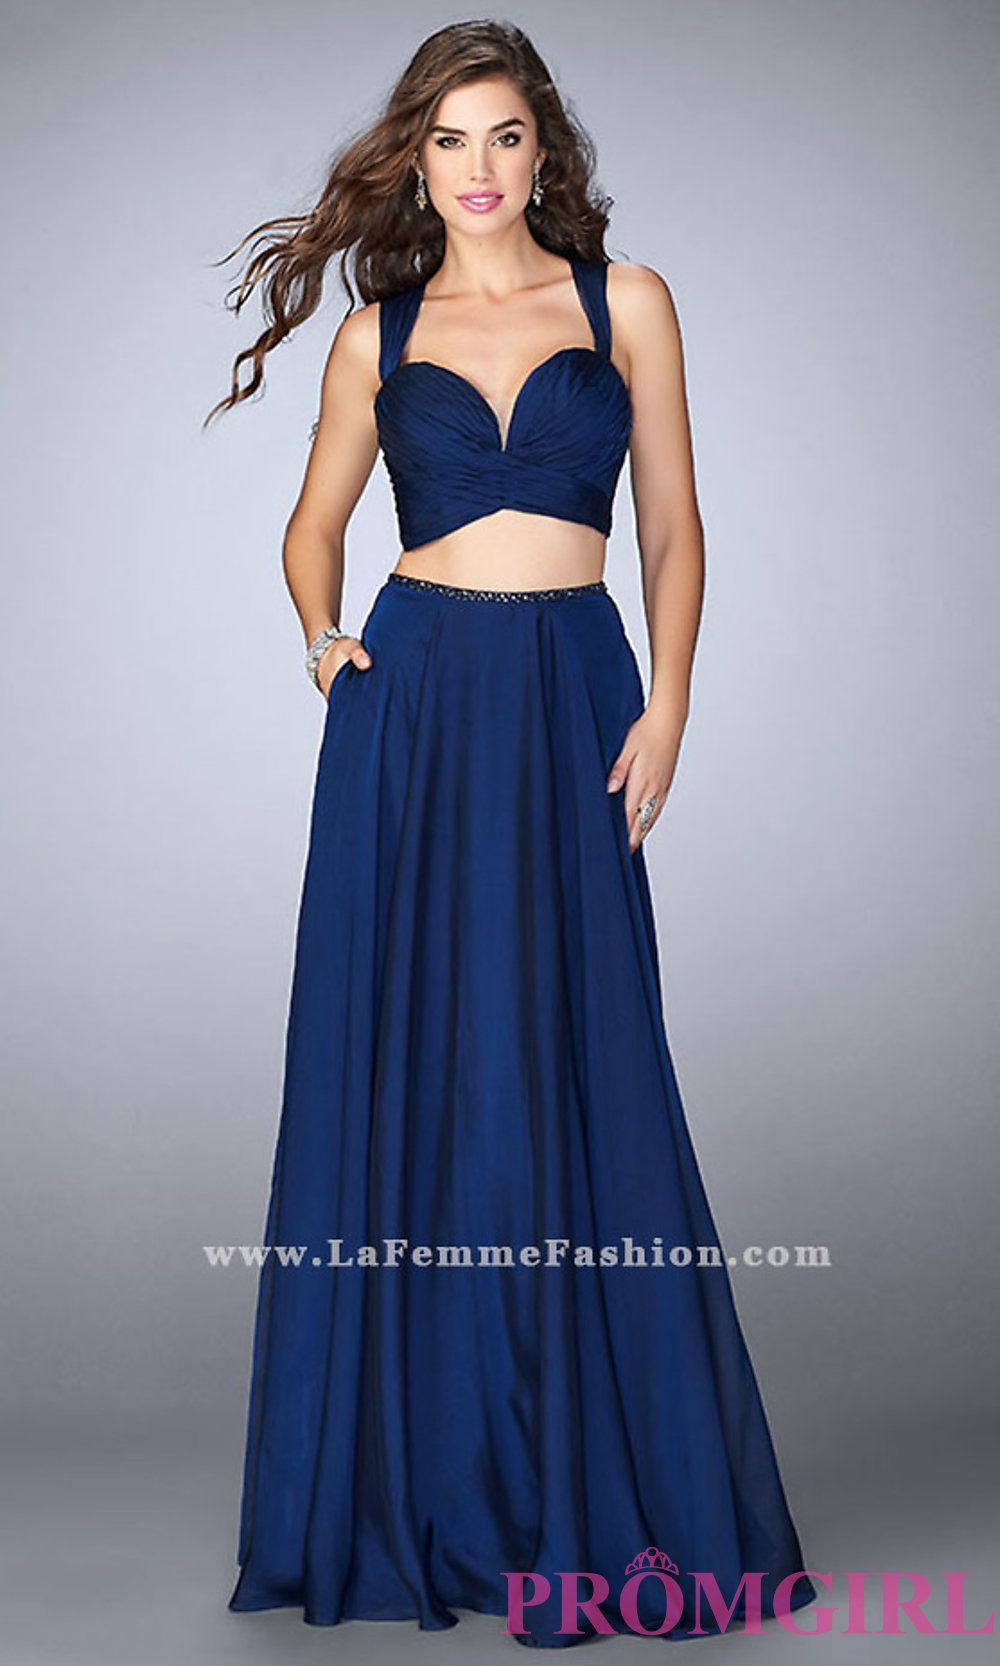 Long plunging sweetheart open back two piece prom dress with a